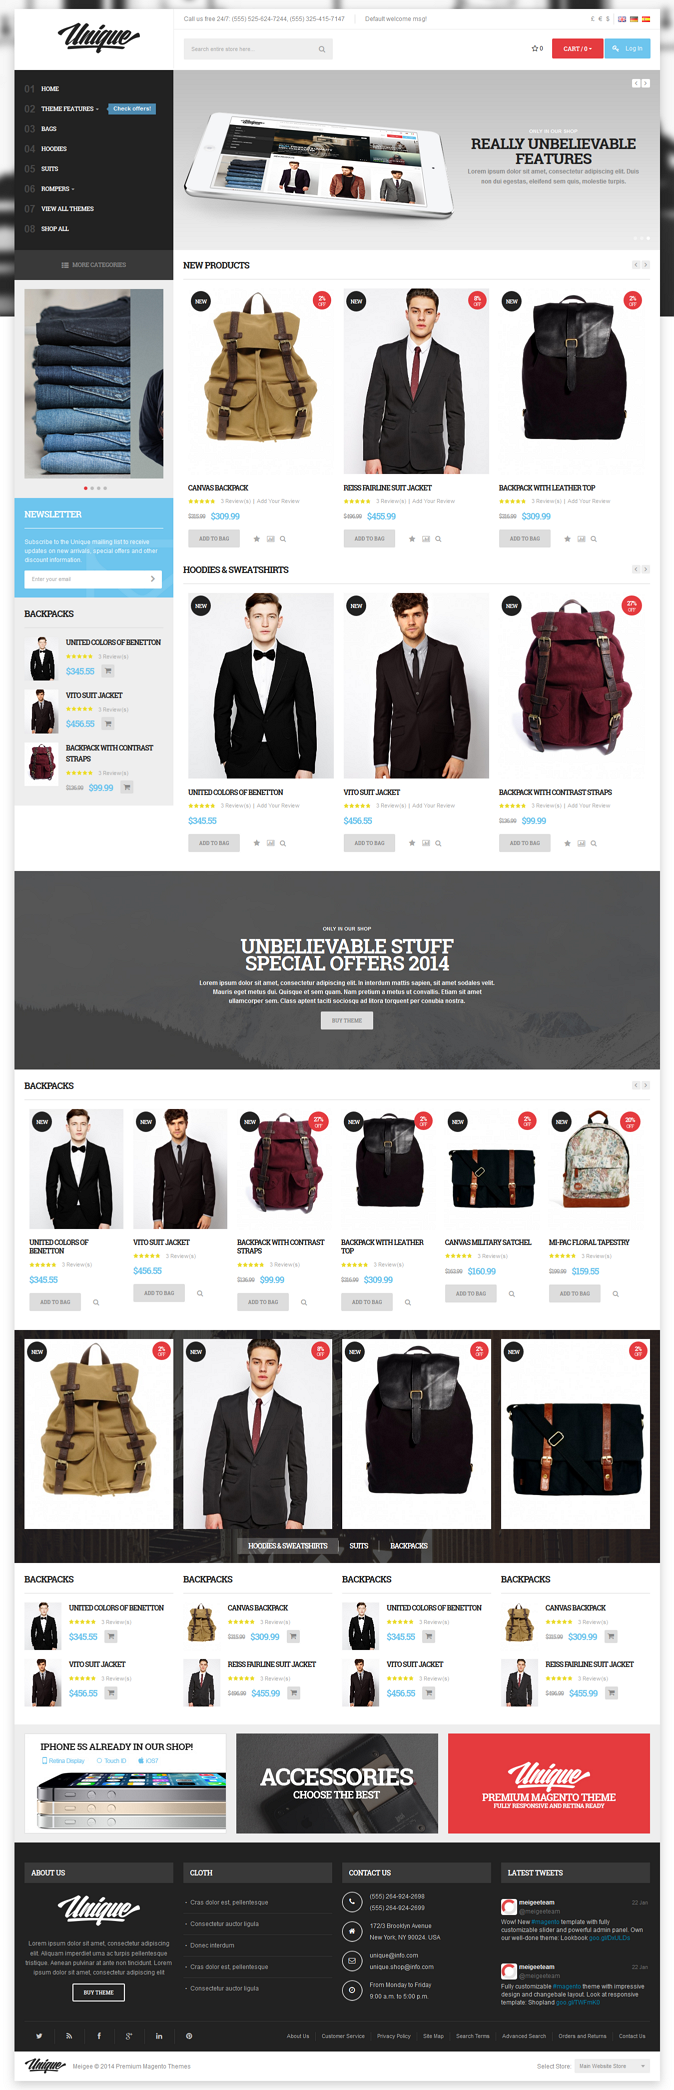 In this article we have collected 8 Best PrestaShop themes for your eCommerce Website. PrestaSho ...